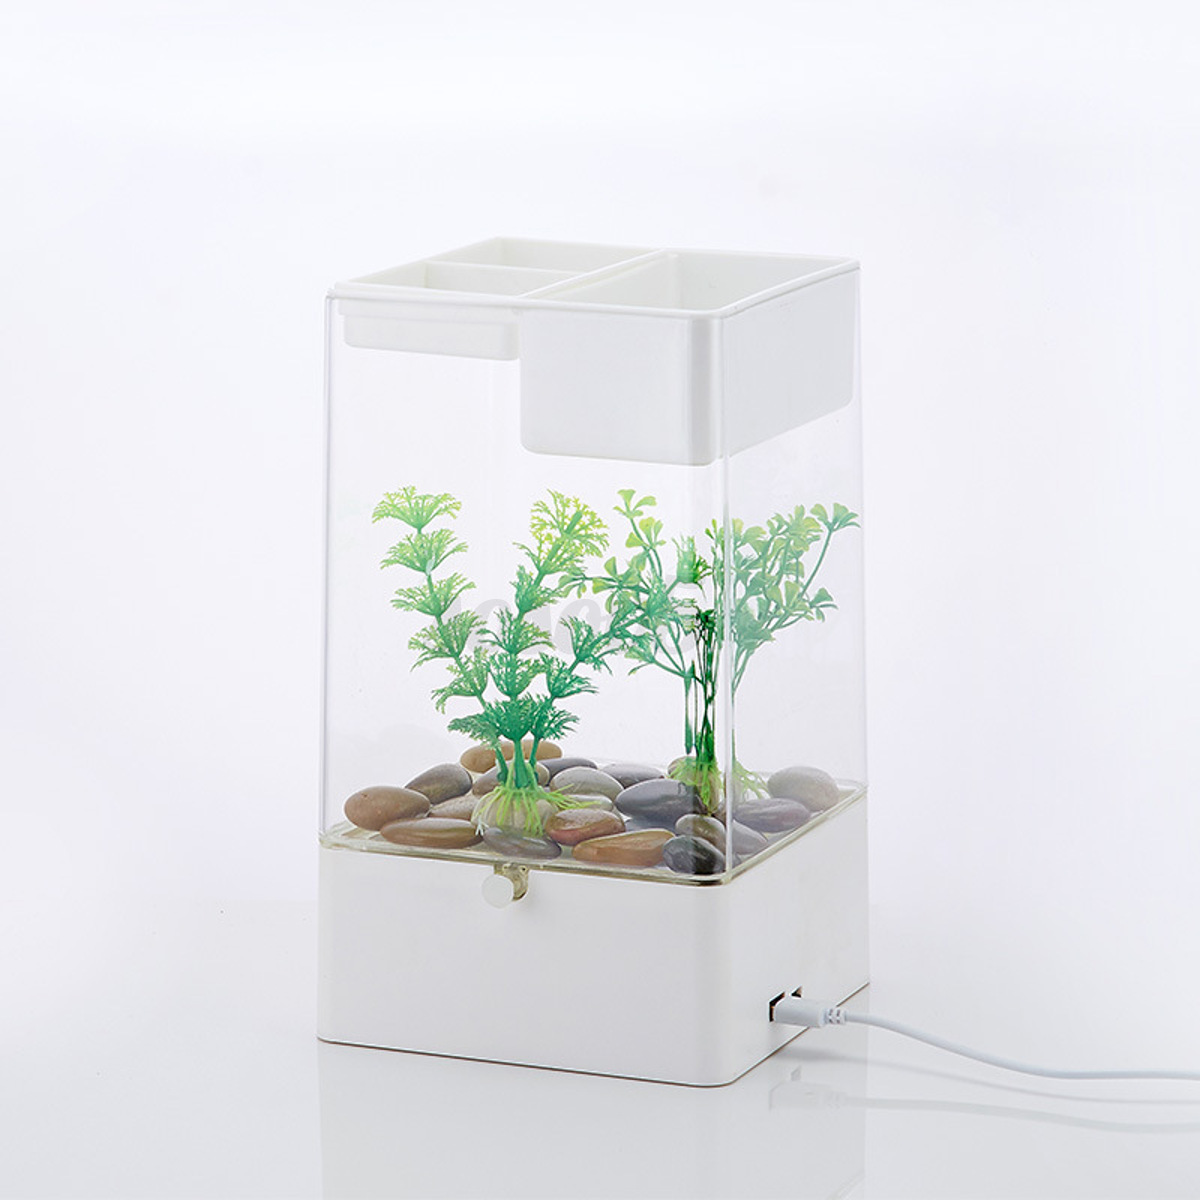 mini fish tank usb desktop lamp light colorful led aquarium black new square ebay. Black Bedroom Furniture Sets. Home Design Ideas